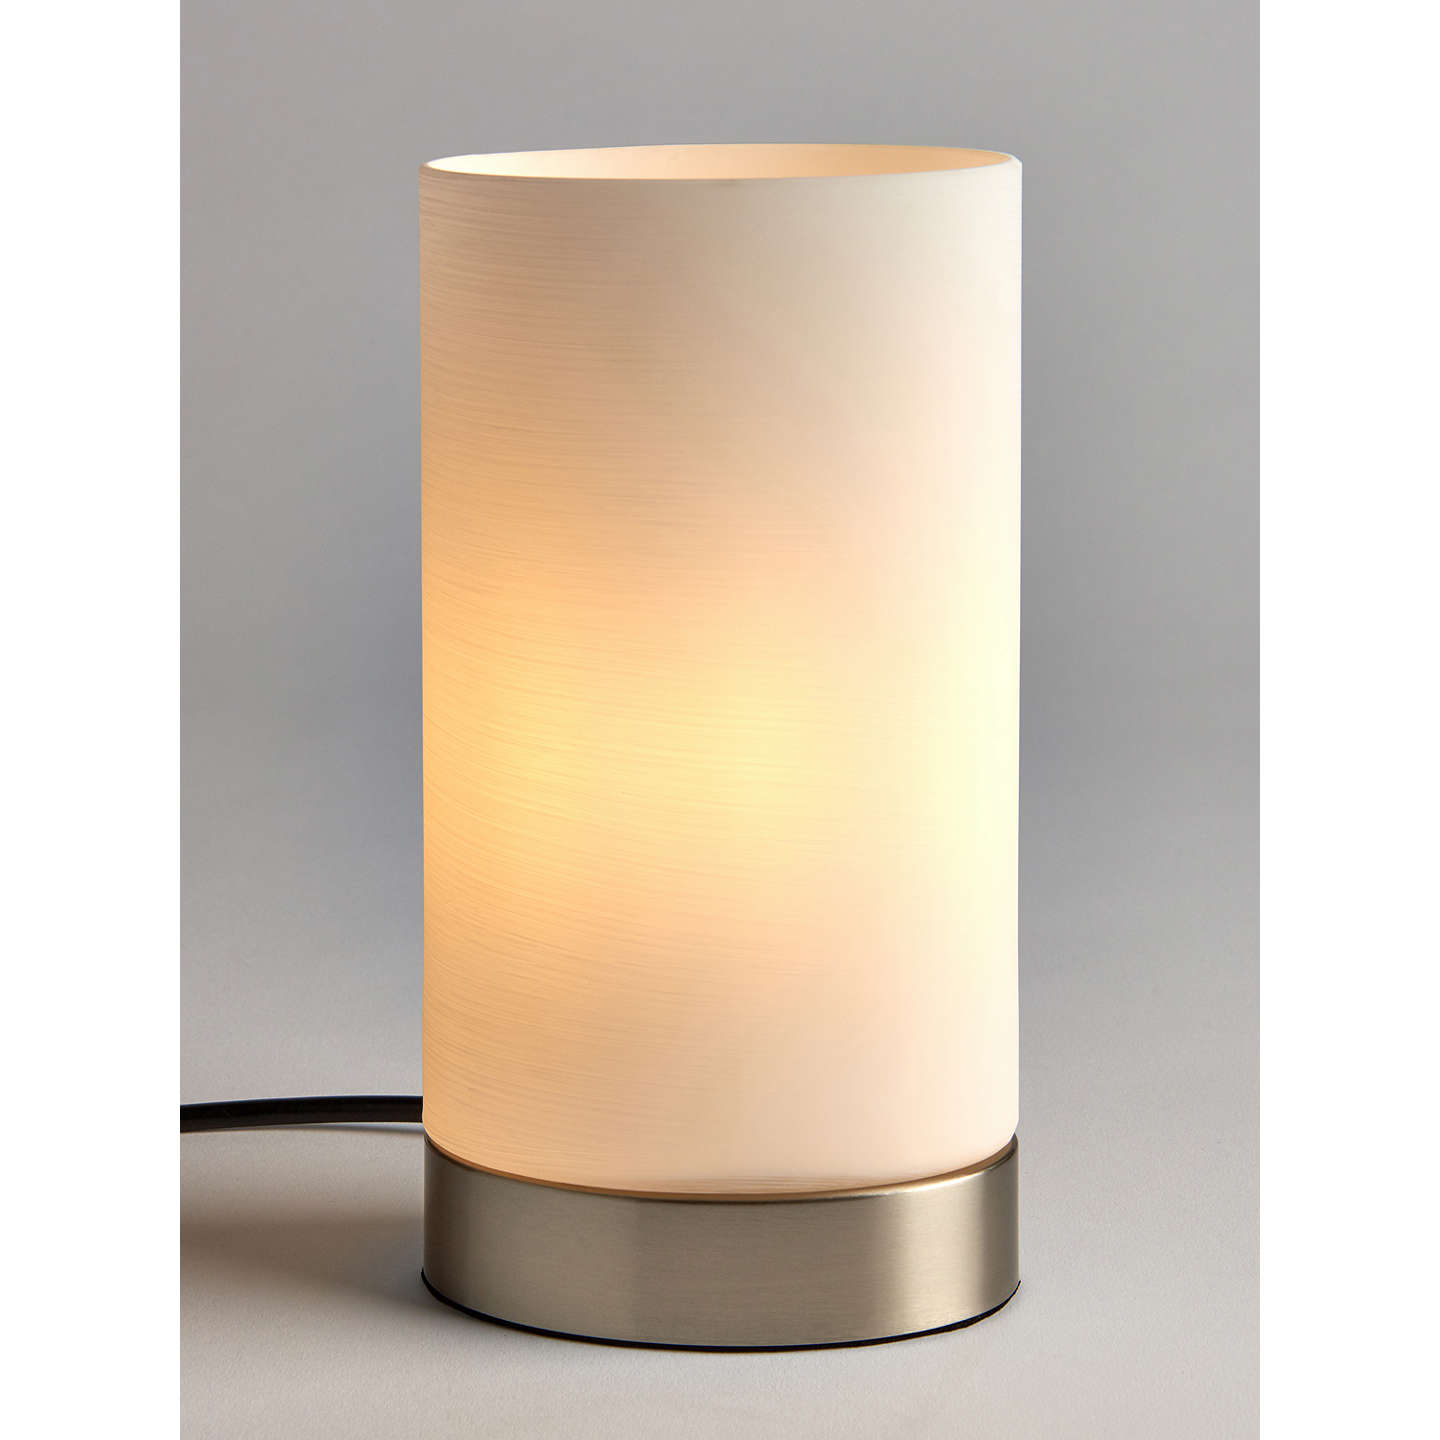 John lewis danny oval touch table lamp satin nickel at john lewis buyjohn lewis danny oval touch table lamp satin nickel online at johnlewis aloadofball Image collections